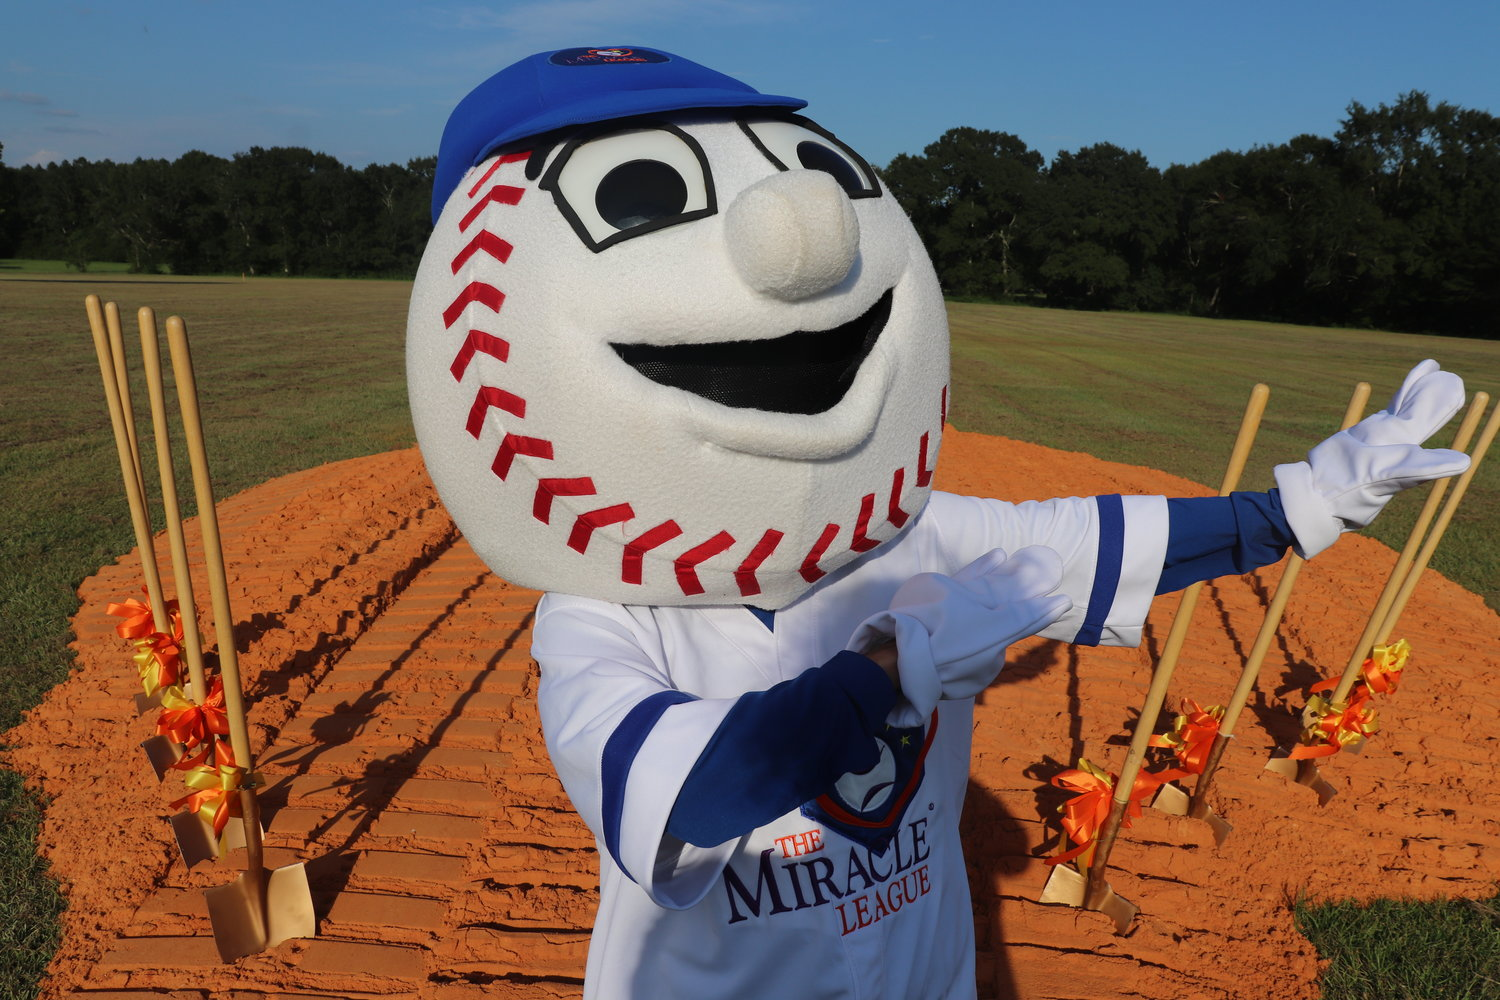 The Miracle League mascot, Homer, poses before the groundbreaking ceremony in Summerdale last week. The stadium complex, which will also be home to an all-inclusive playground, is estimated to be completed in 18 months.